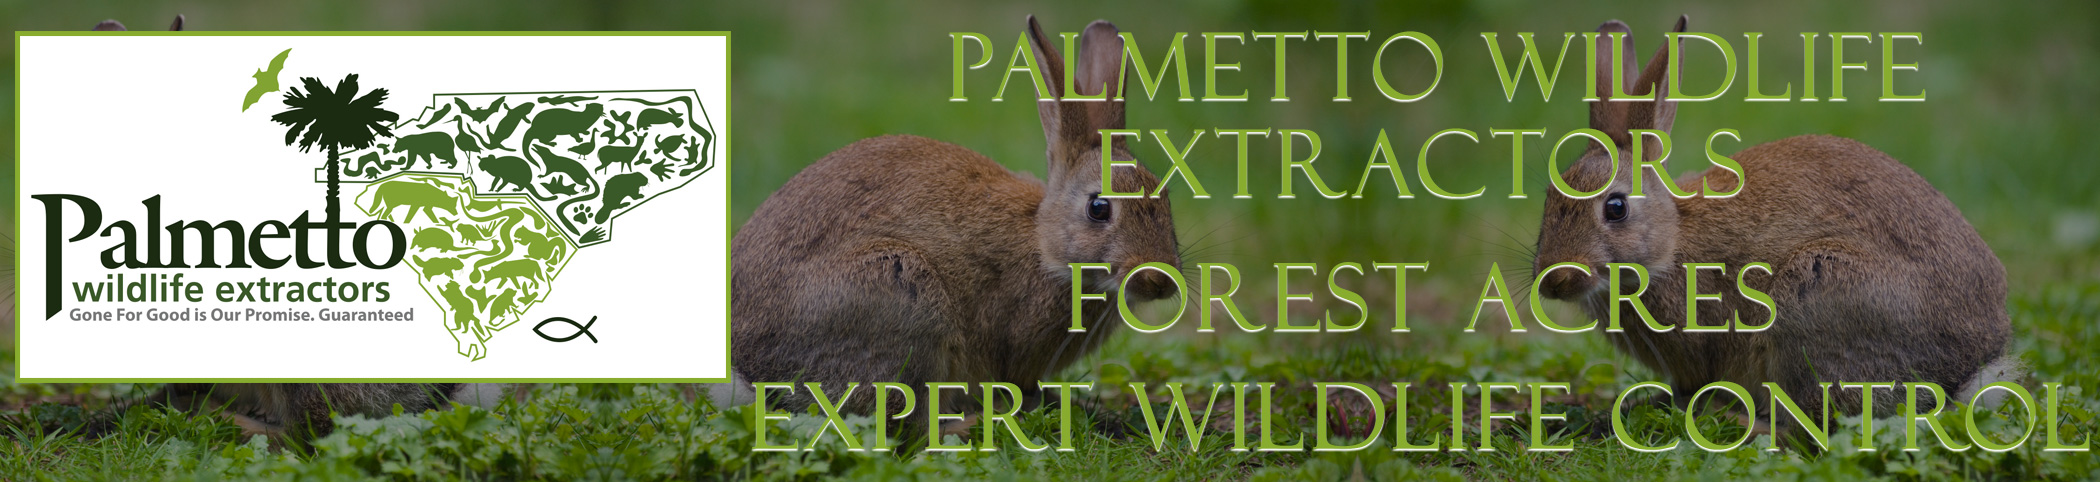 Palmetto Wildlife Extractors Forest Acres south carolina header image